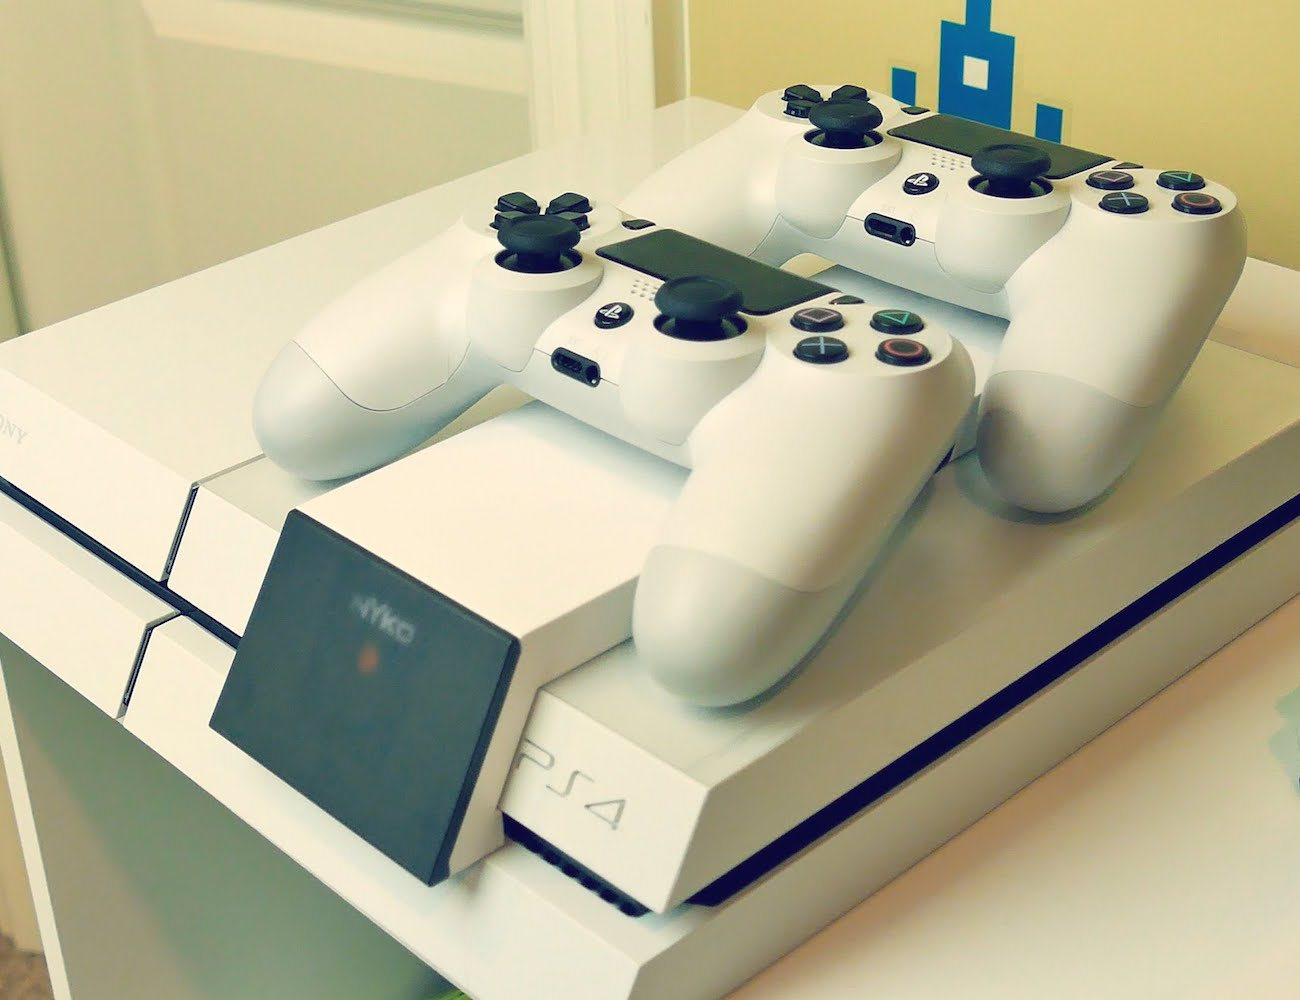 Nyko – Modular Charge Station for PS4